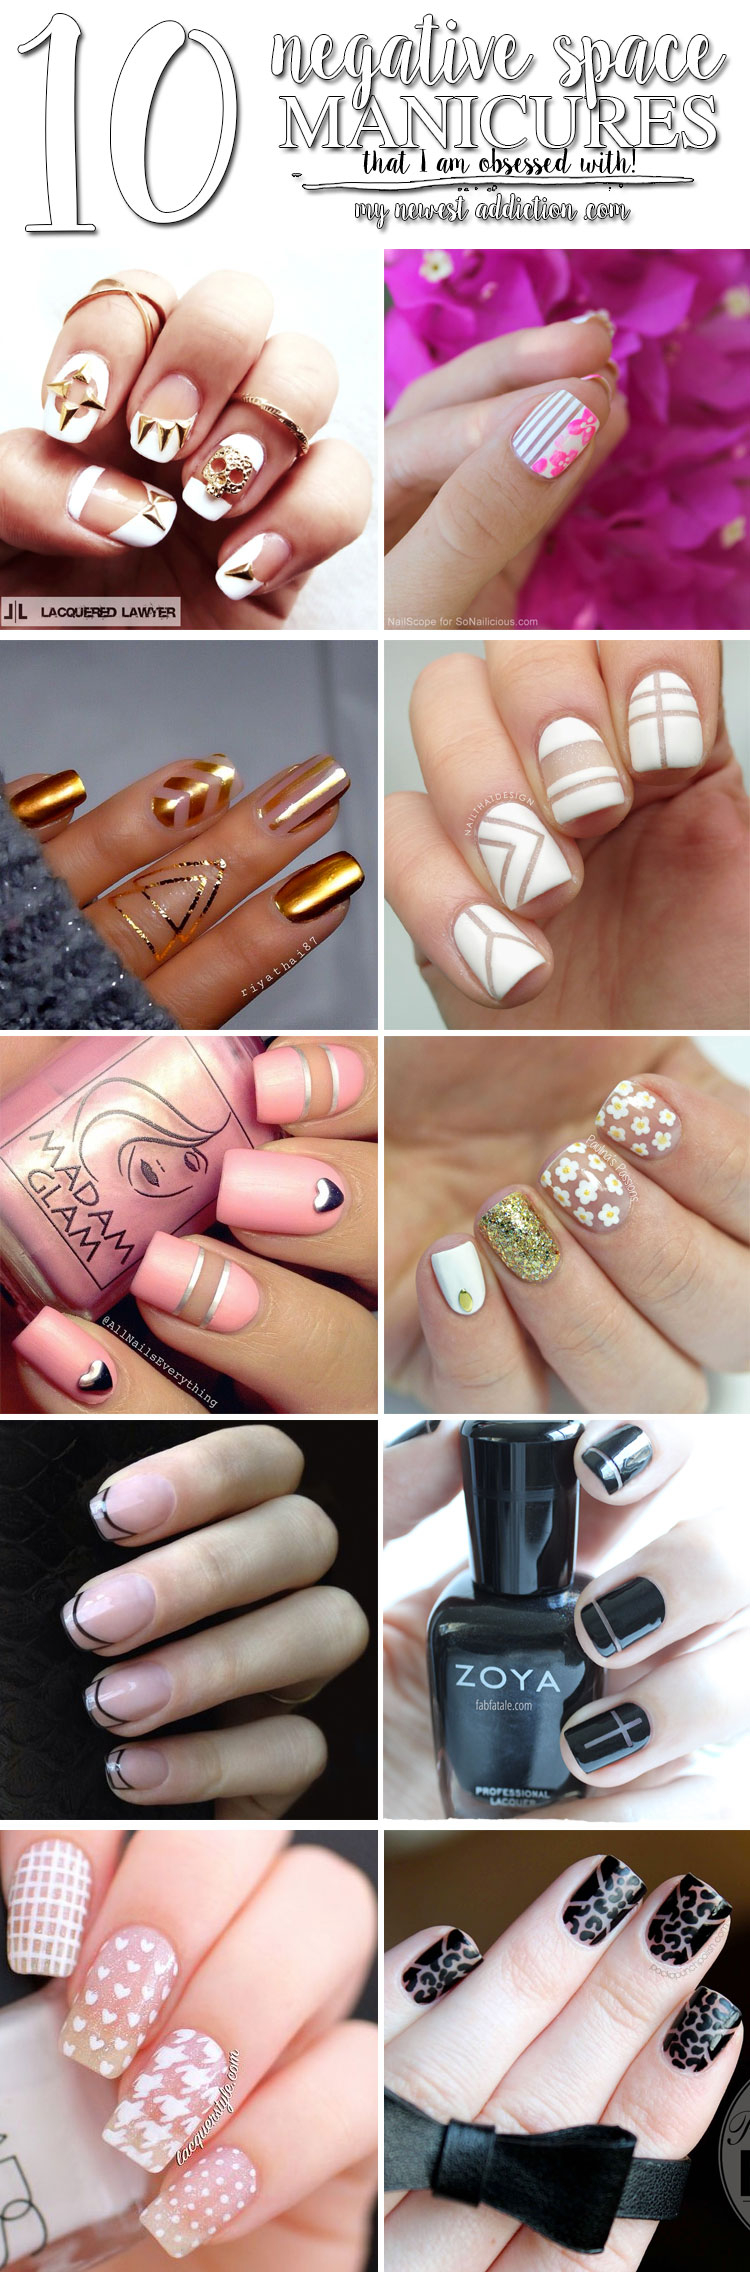 10 Negative Space Manicures That I am OBSESSED with!